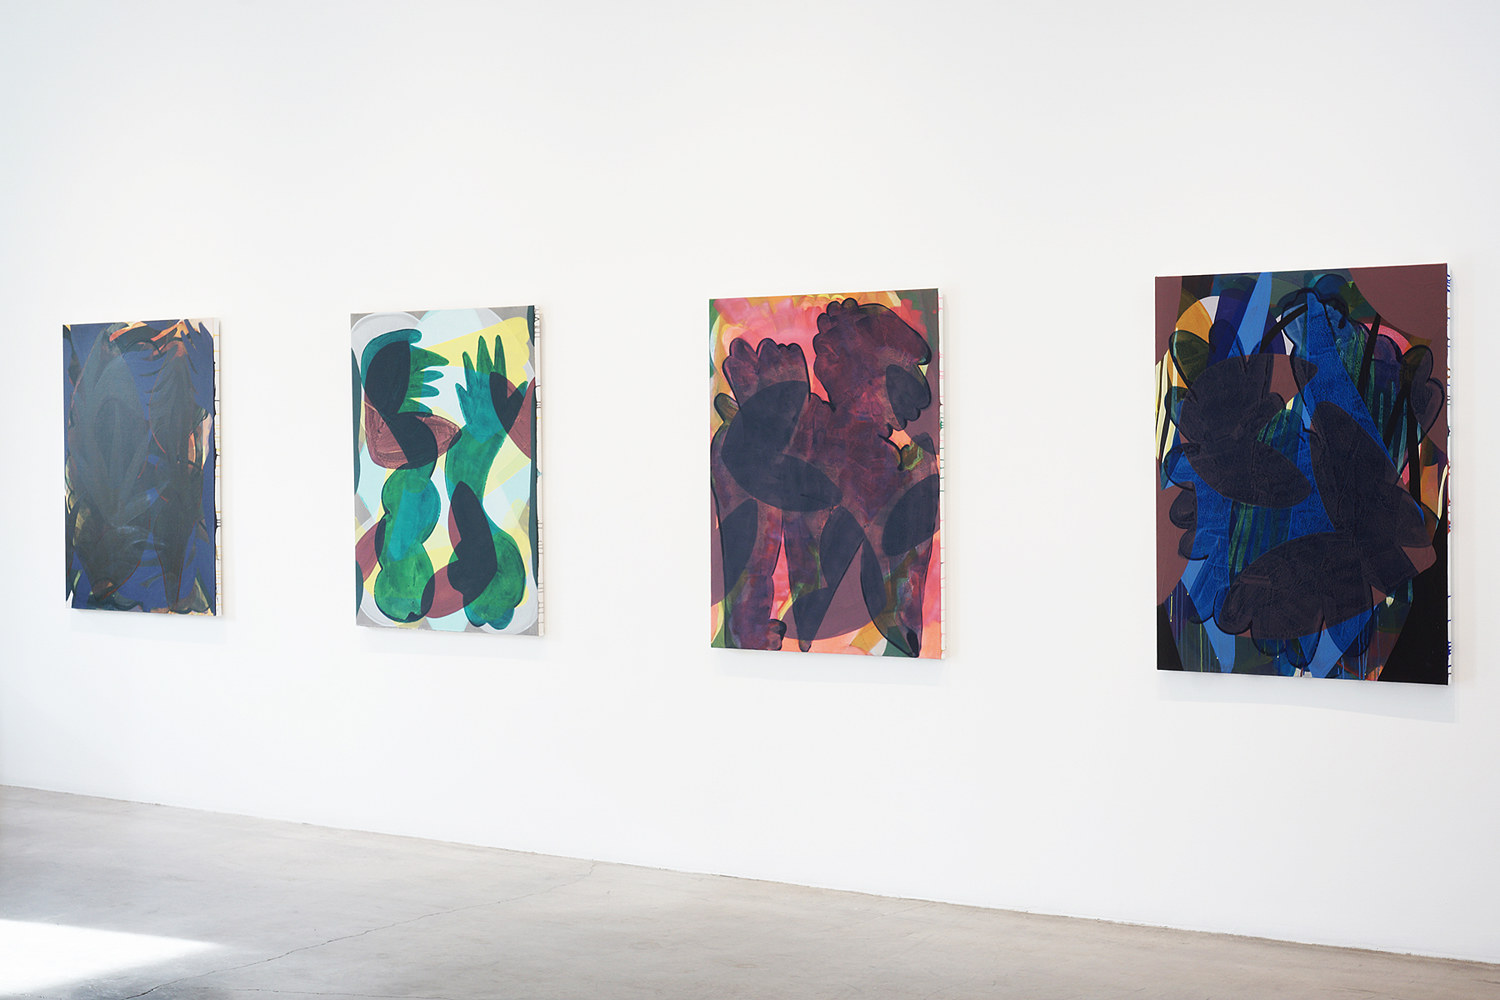 Night Moves, installation view at Paul Kuhn Gallery by Ashleigh Bartlett